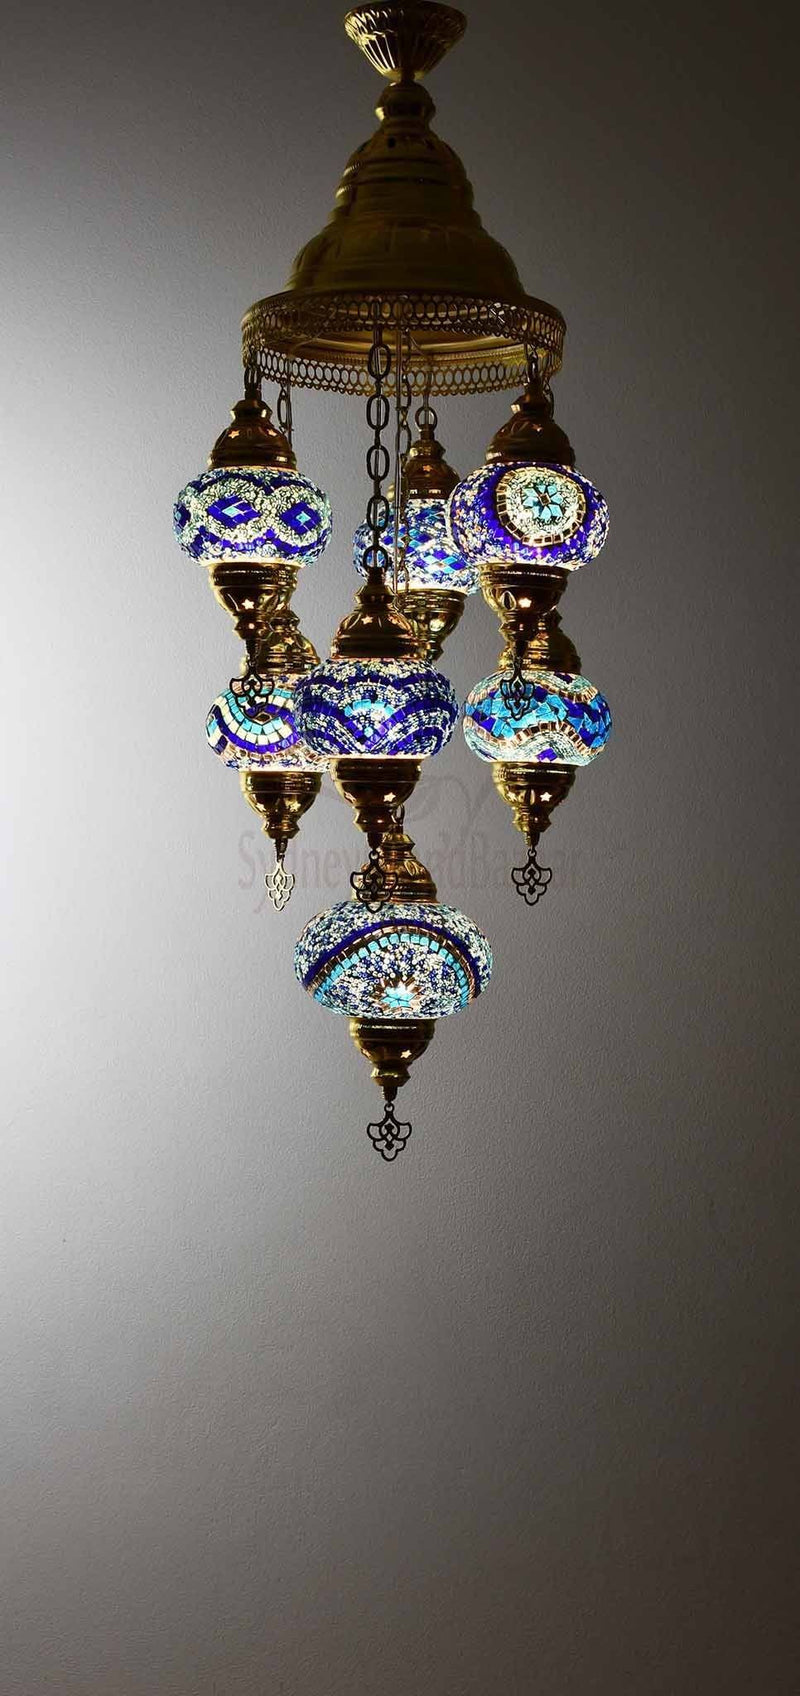 Turkish Mosaic Pendant Light 7 Globes in Gold Lighting Sydney Grand Bazaar Blue